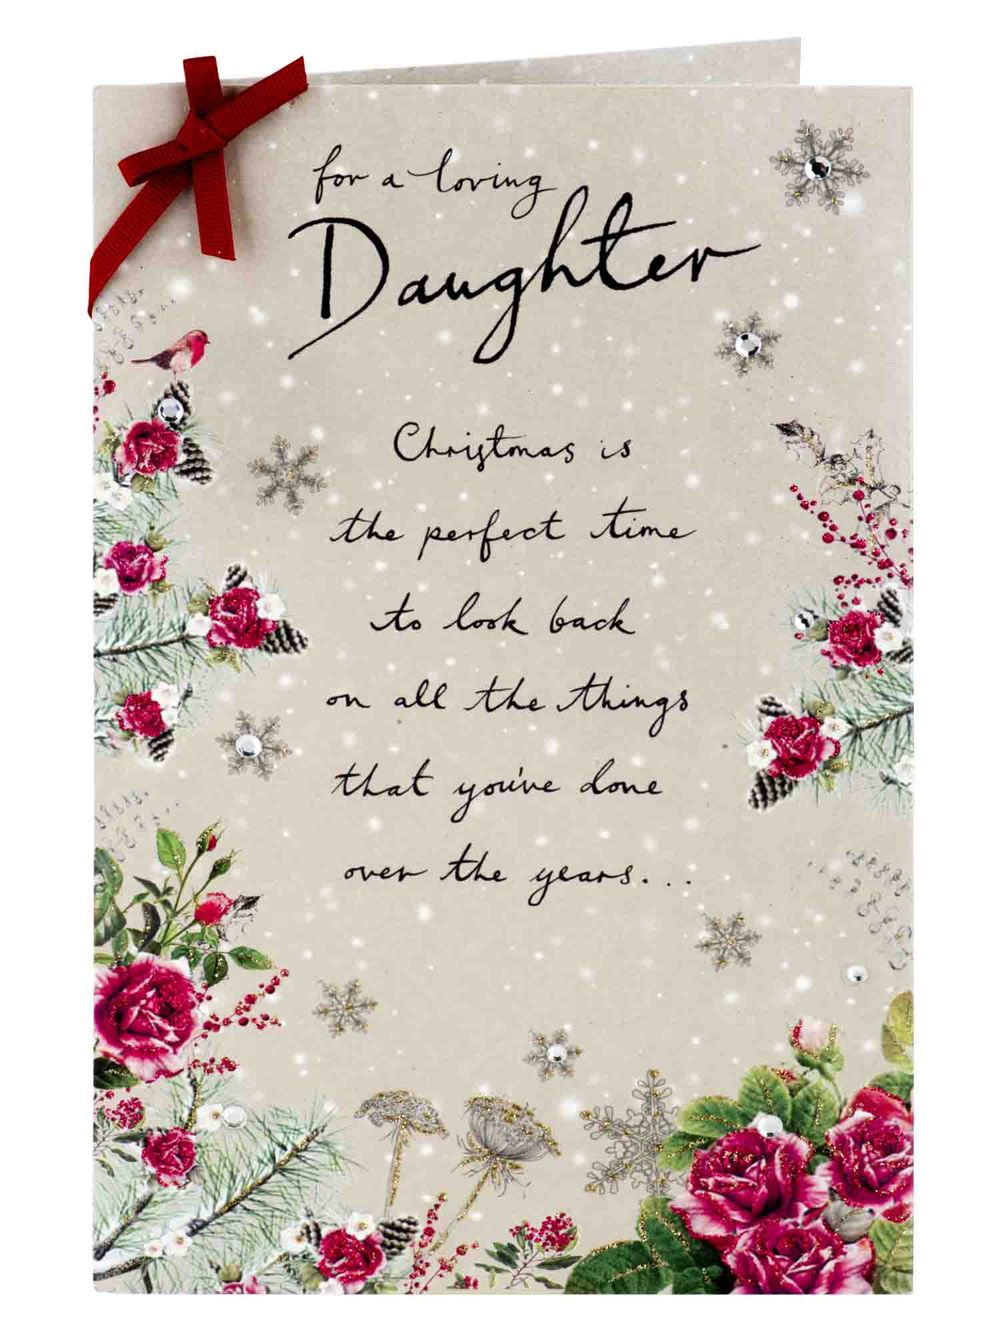 75+ Christmas Message for Daughter to Show Love & Care